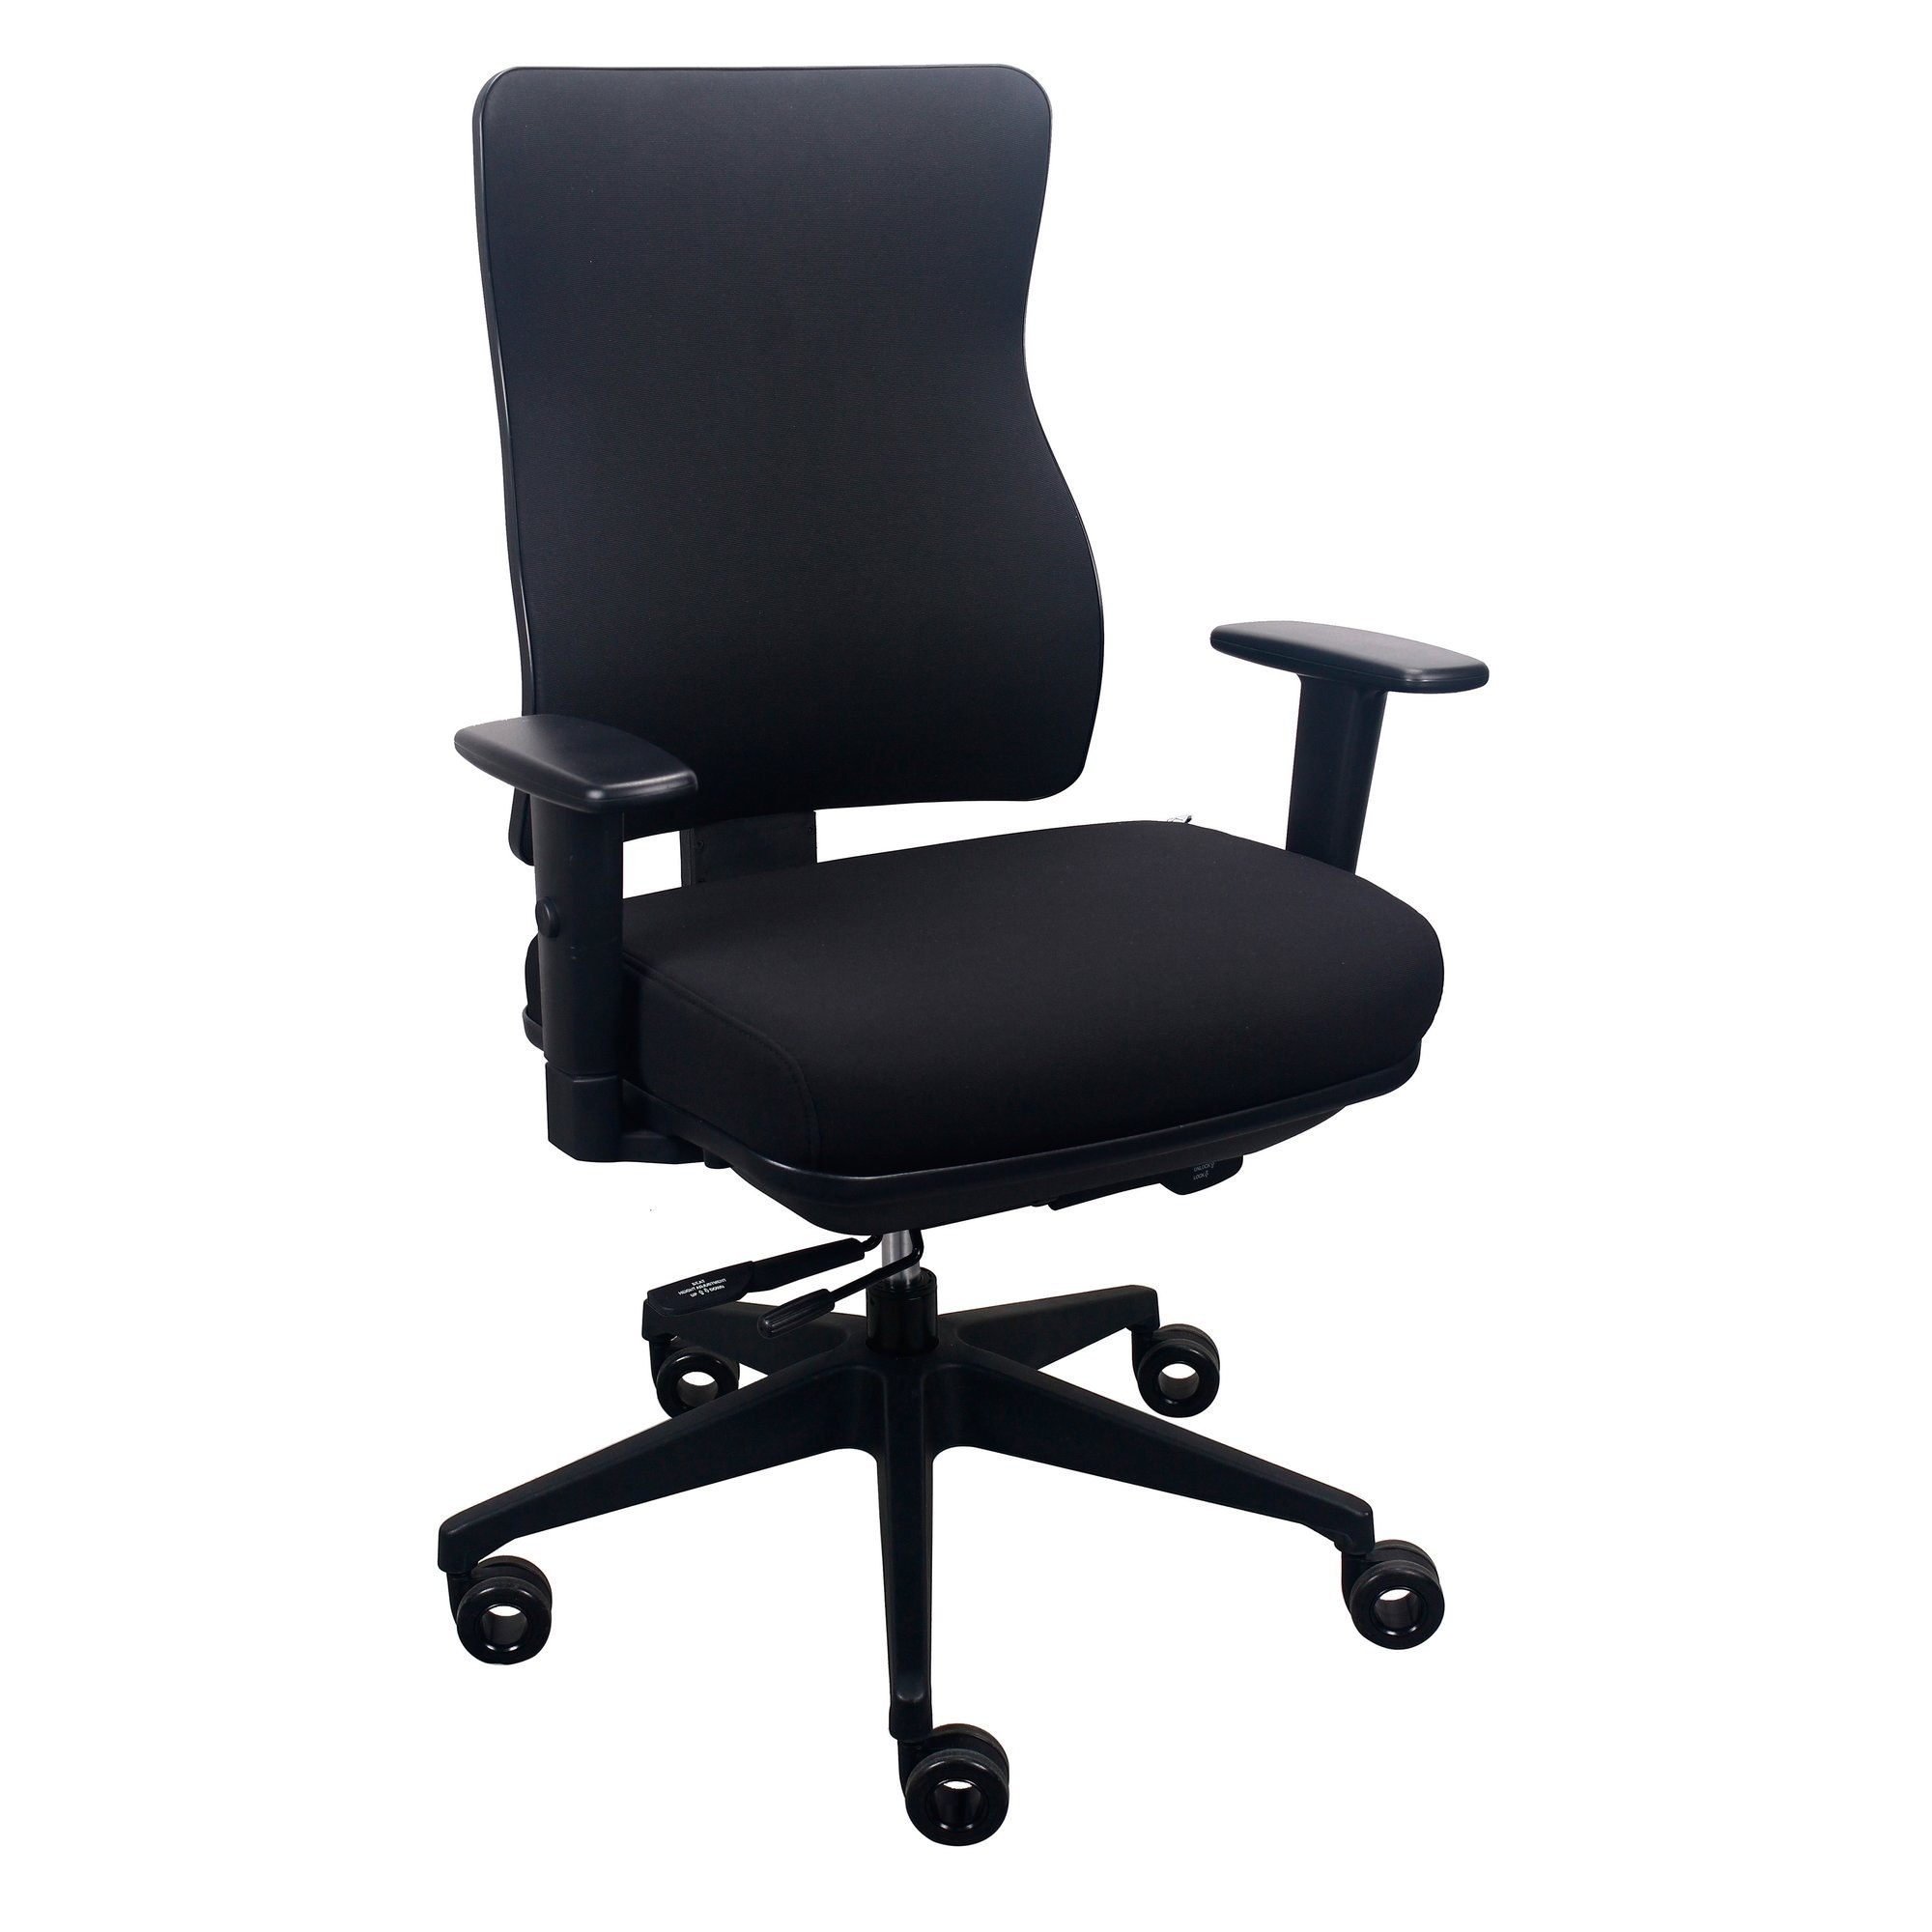 tempur pedic office chair